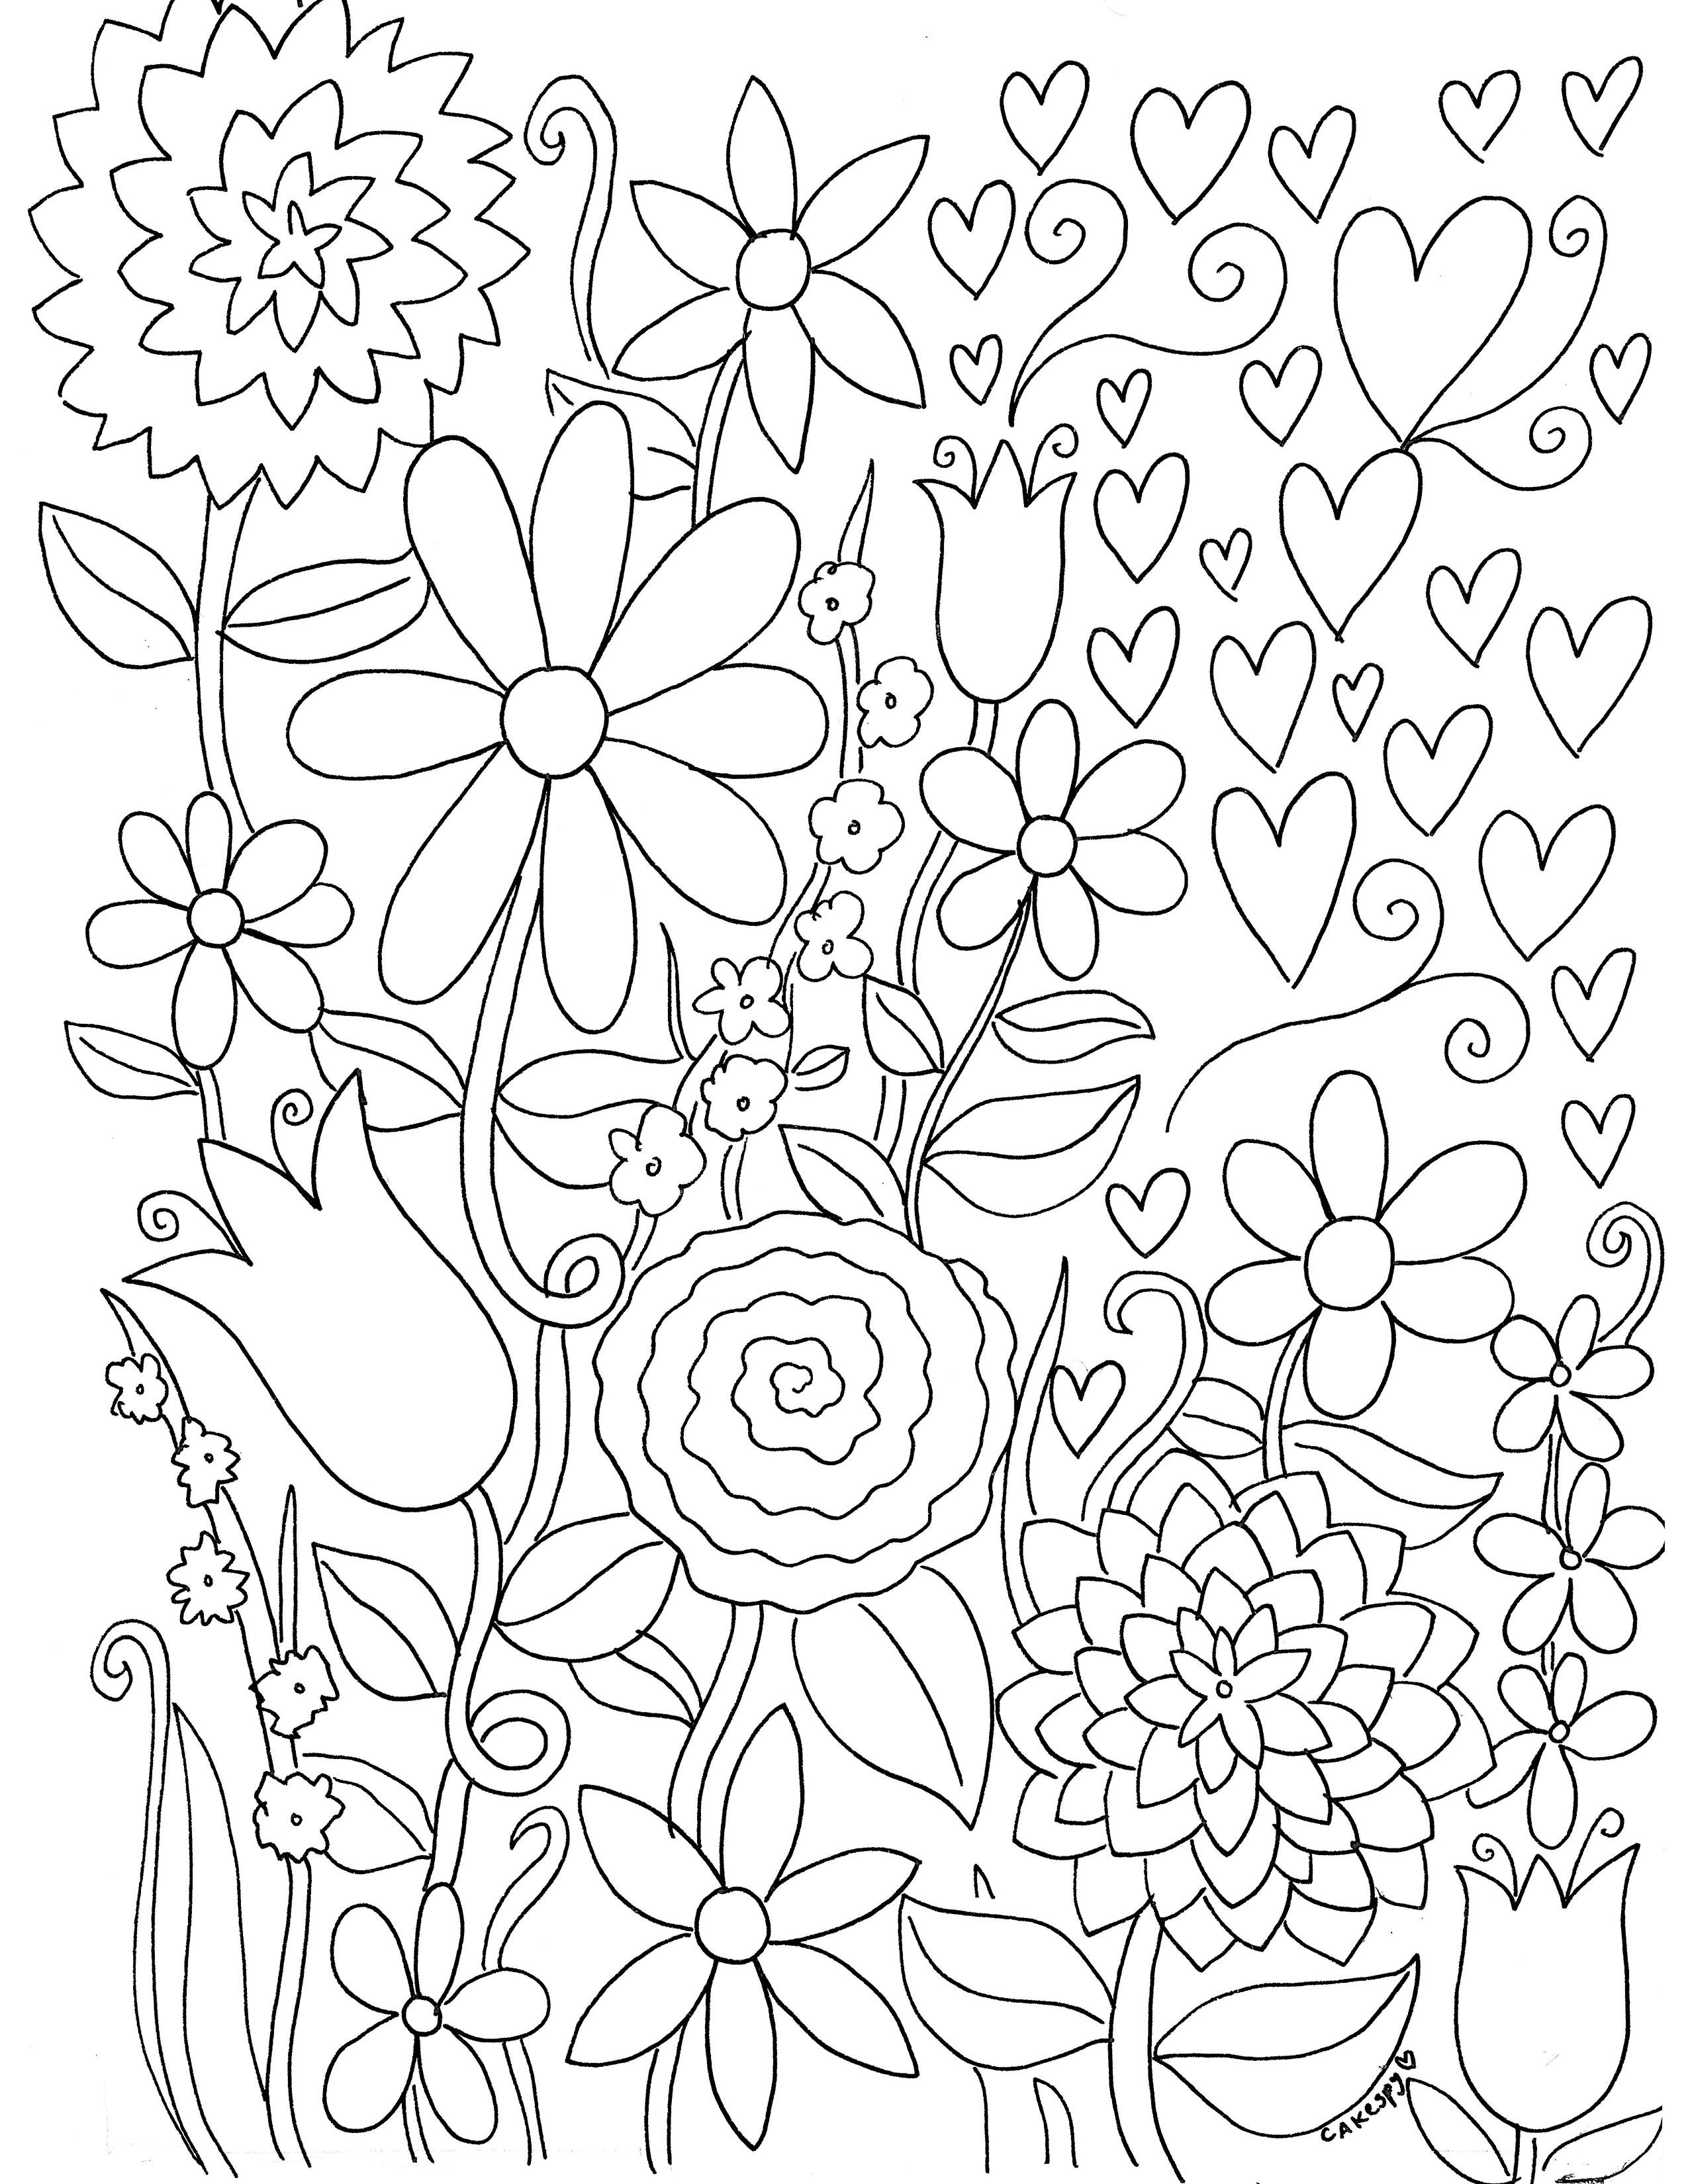 adult coloring book pages - coloring book pages for adults